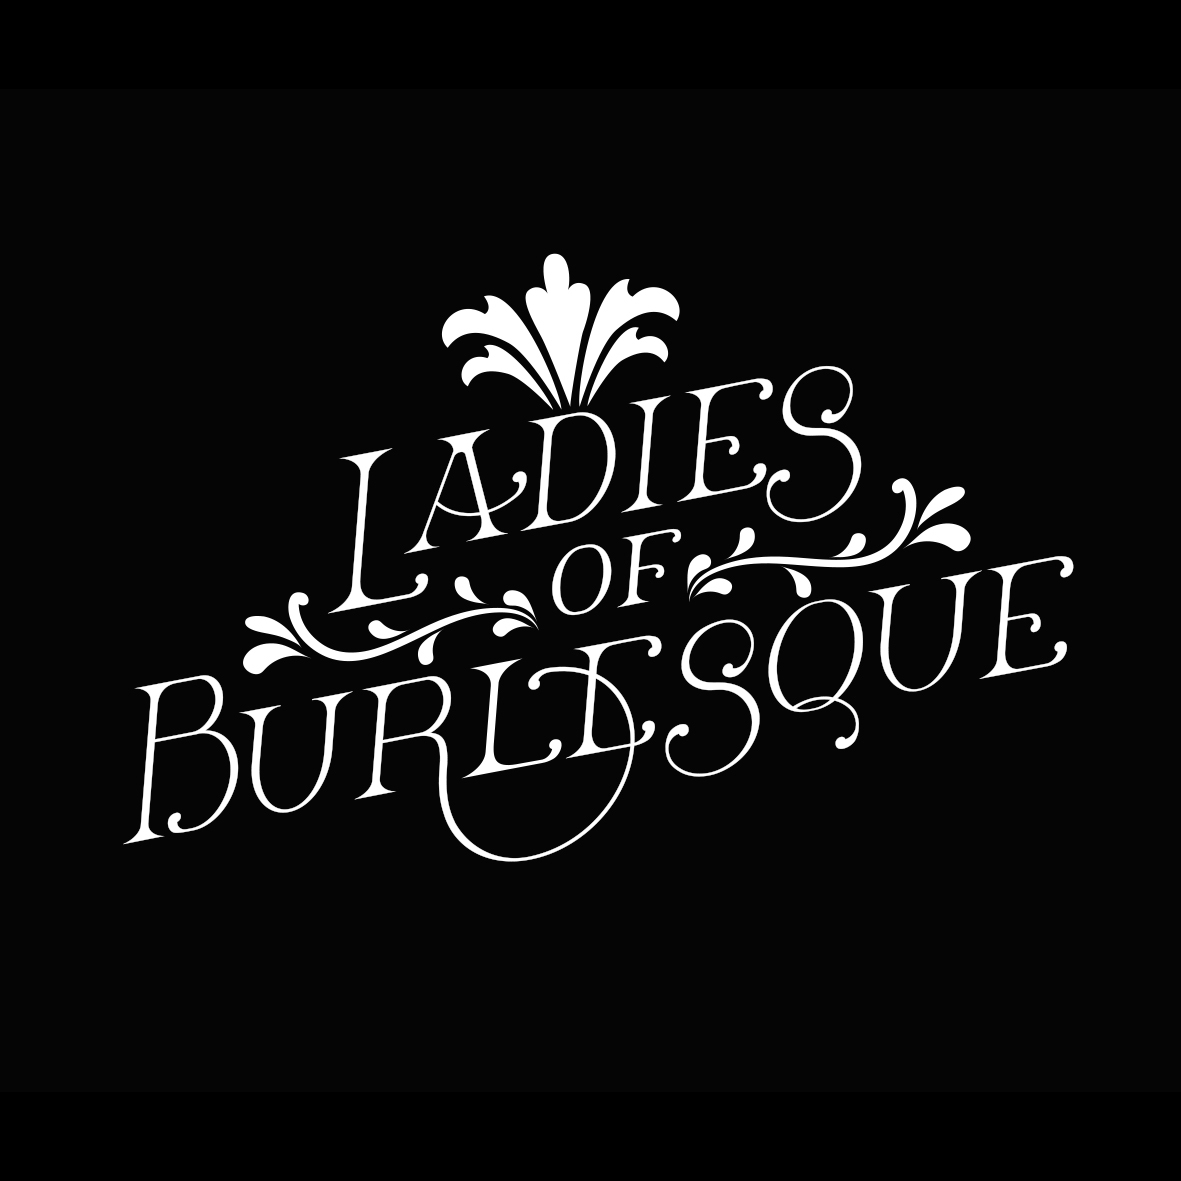 Ladies of Burlesque